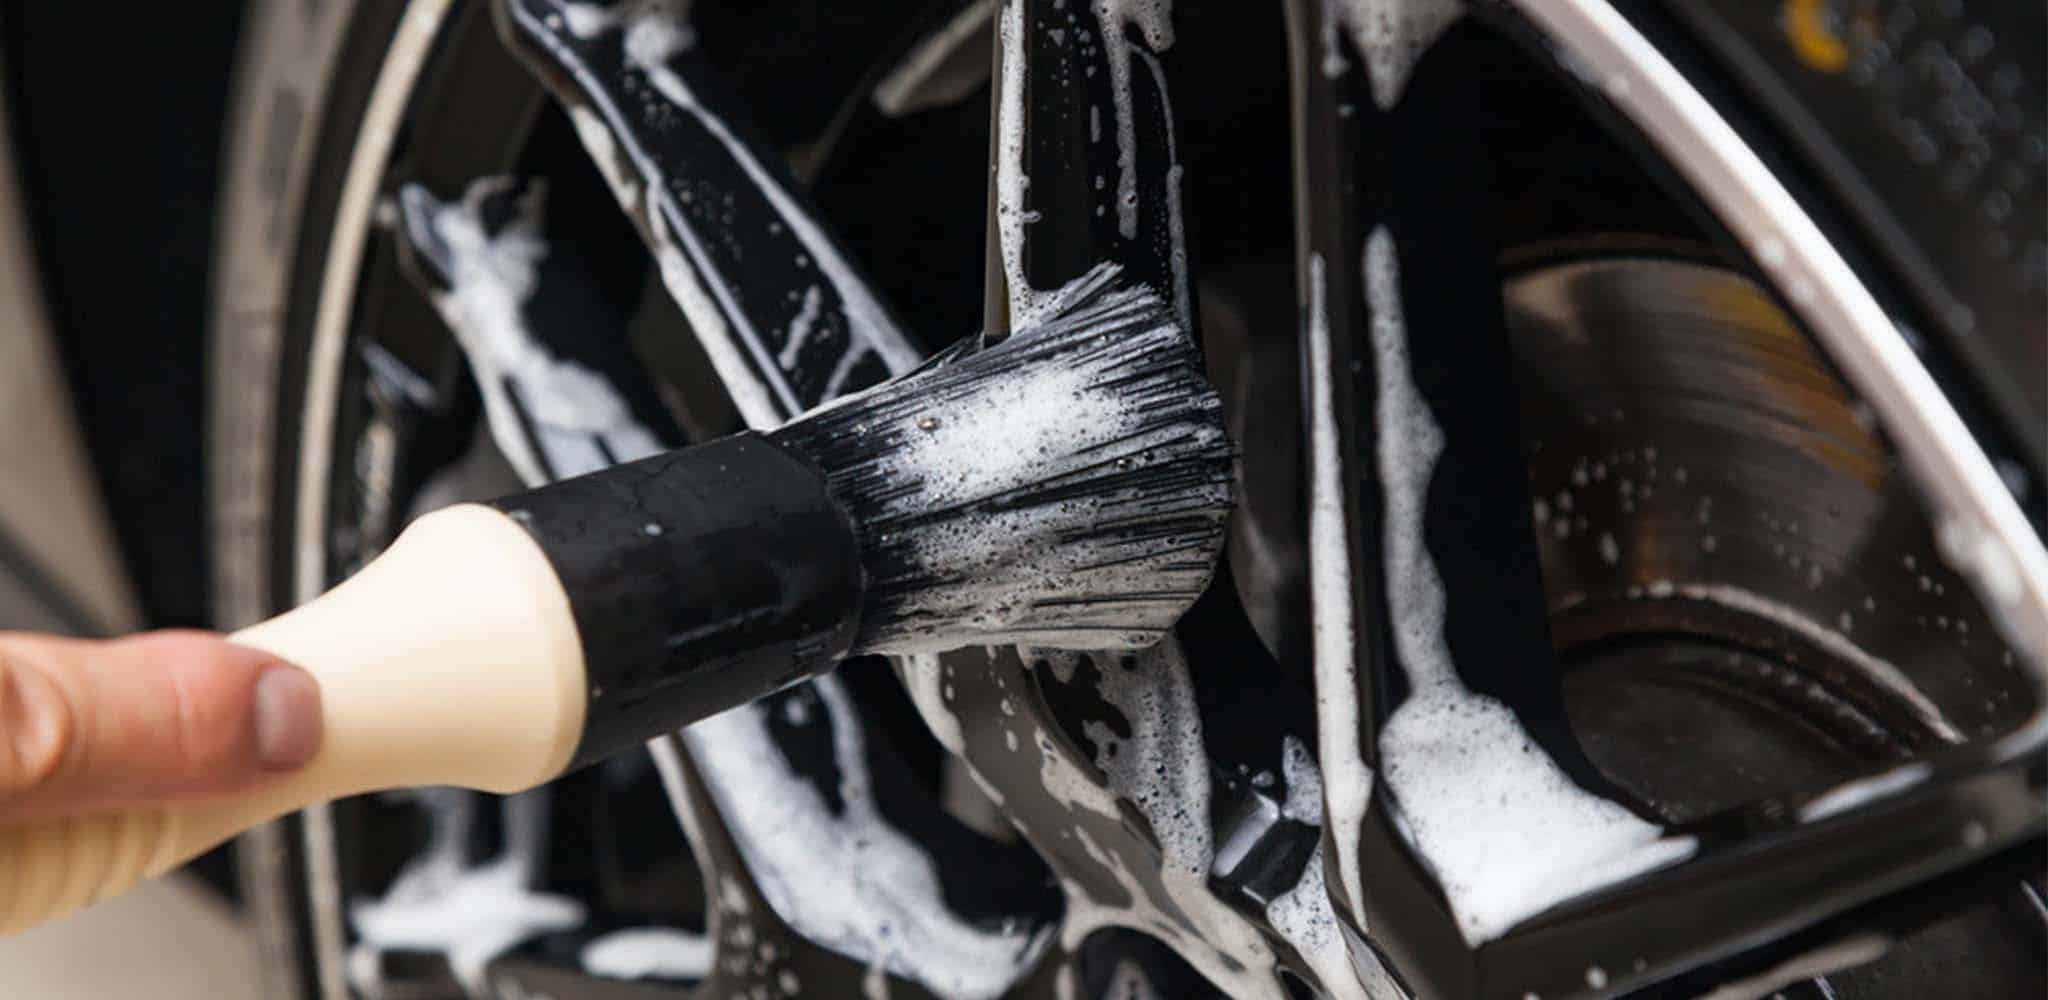 cleaning alloy wheels with brush